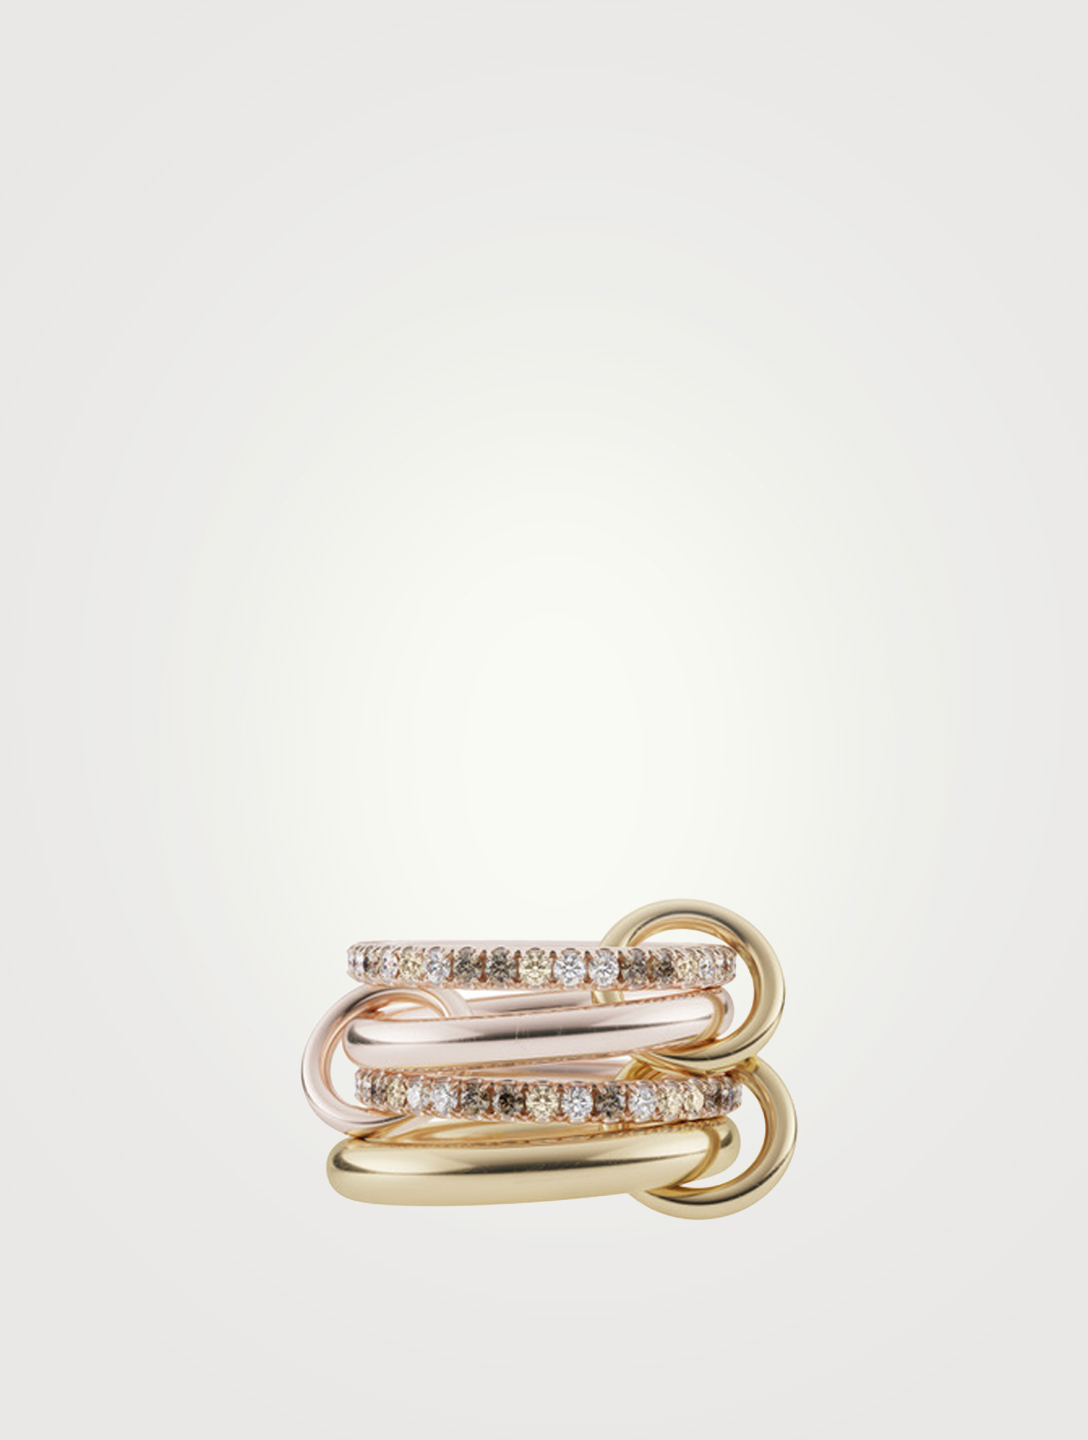 SPINELLI KILCOLLIN Cancer 18K Yellow And Rose Gold Stacked Ring With Diamonds Women's Multi